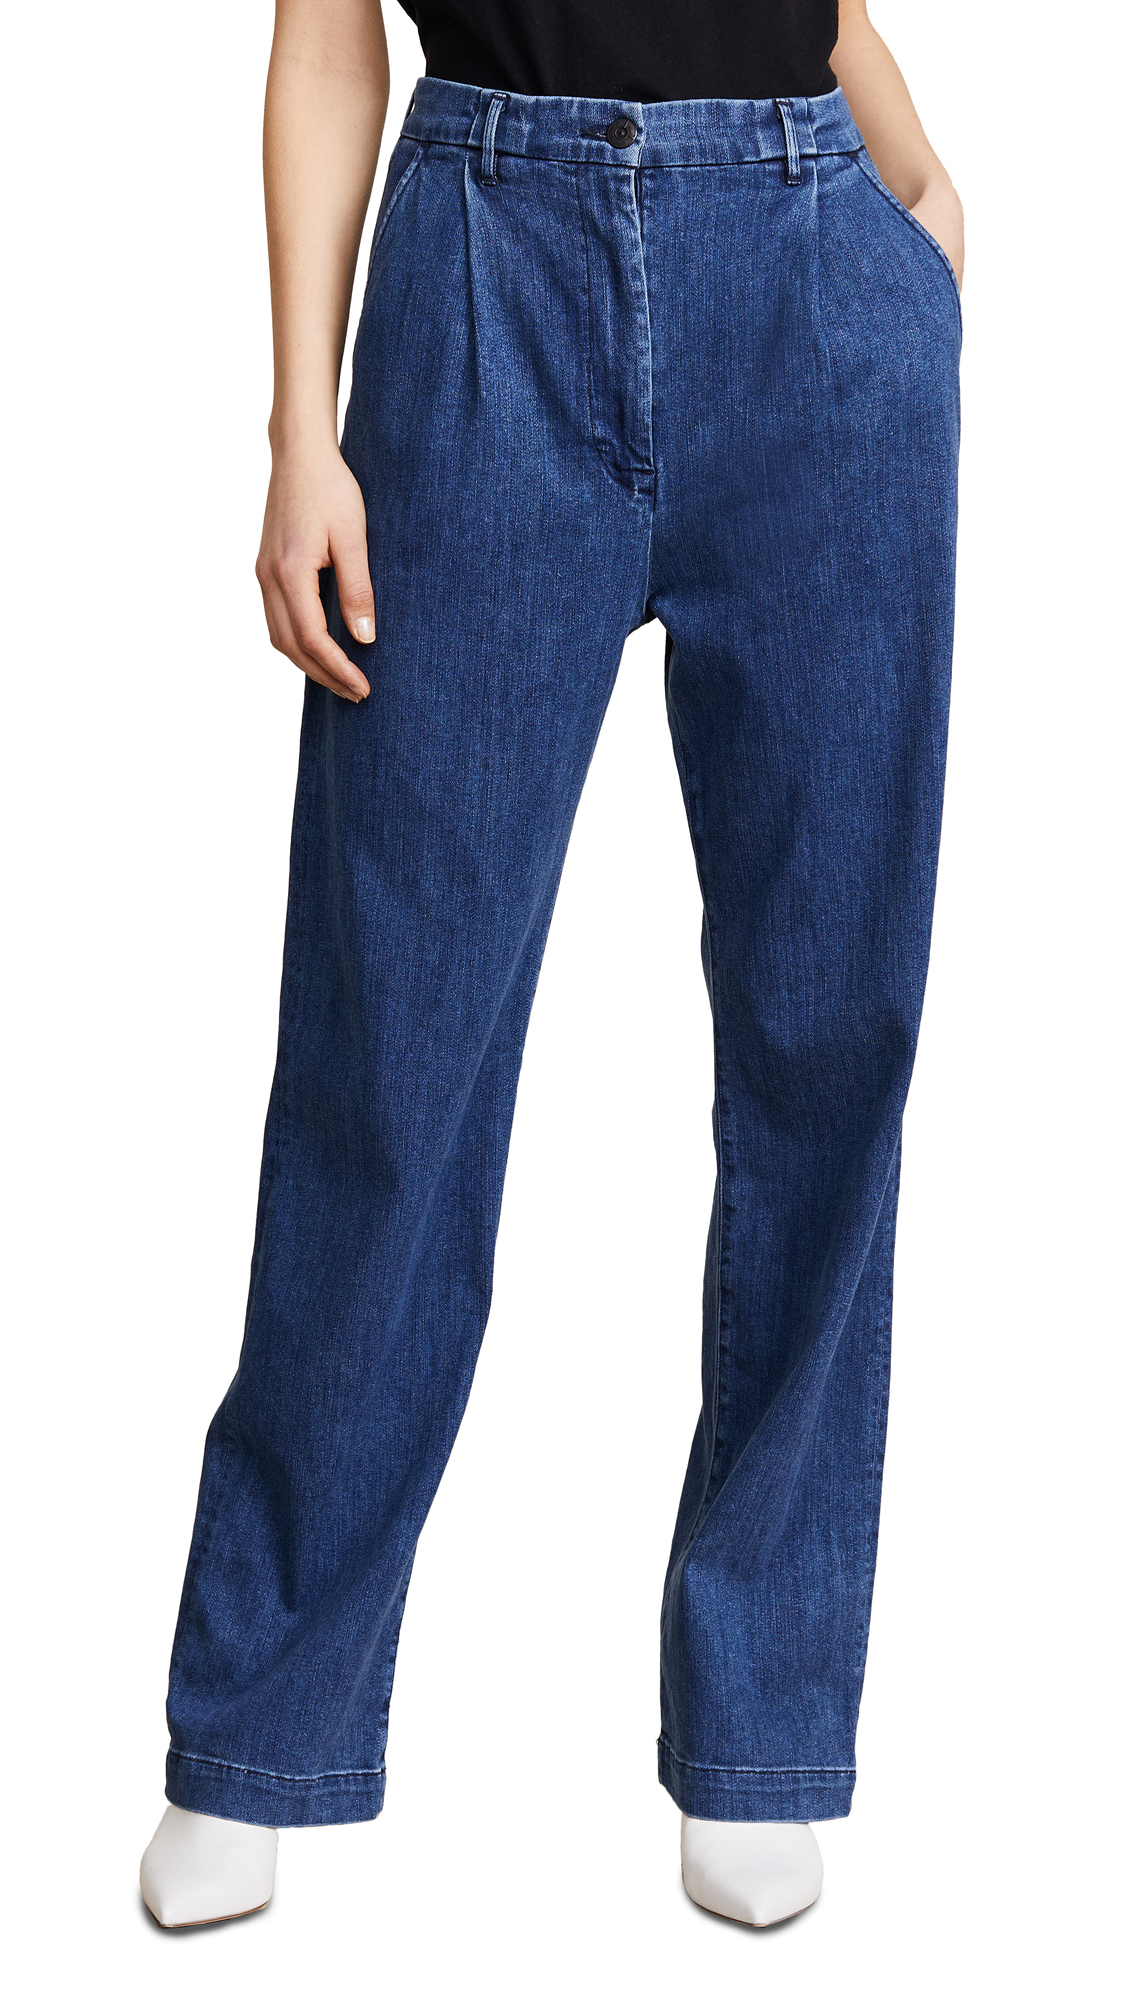 3x1 Pleated Oversized Trouser Jeans In Rays